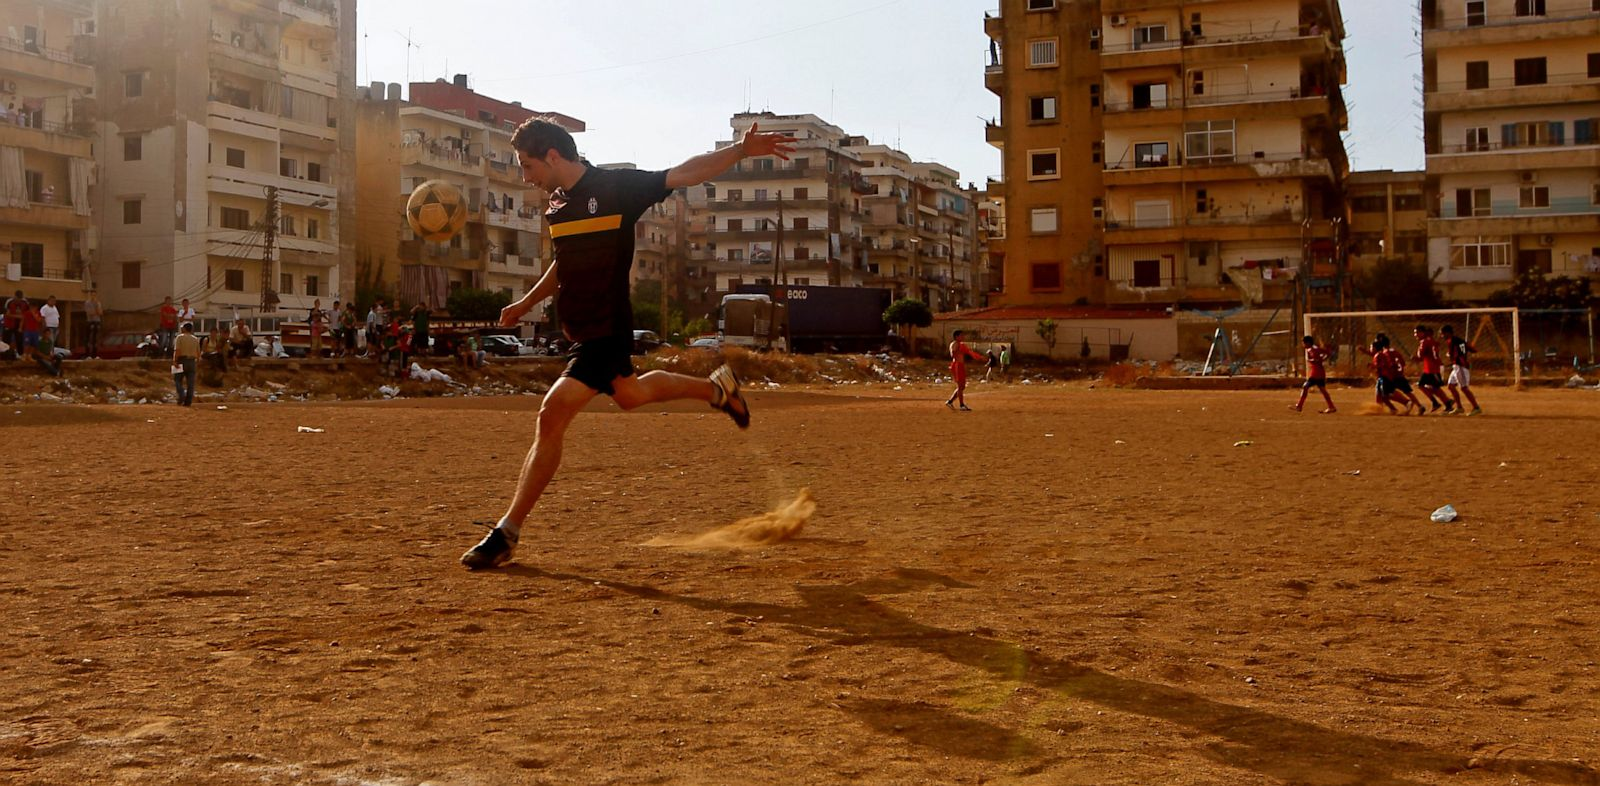 PHOTO: Nour playing soccer